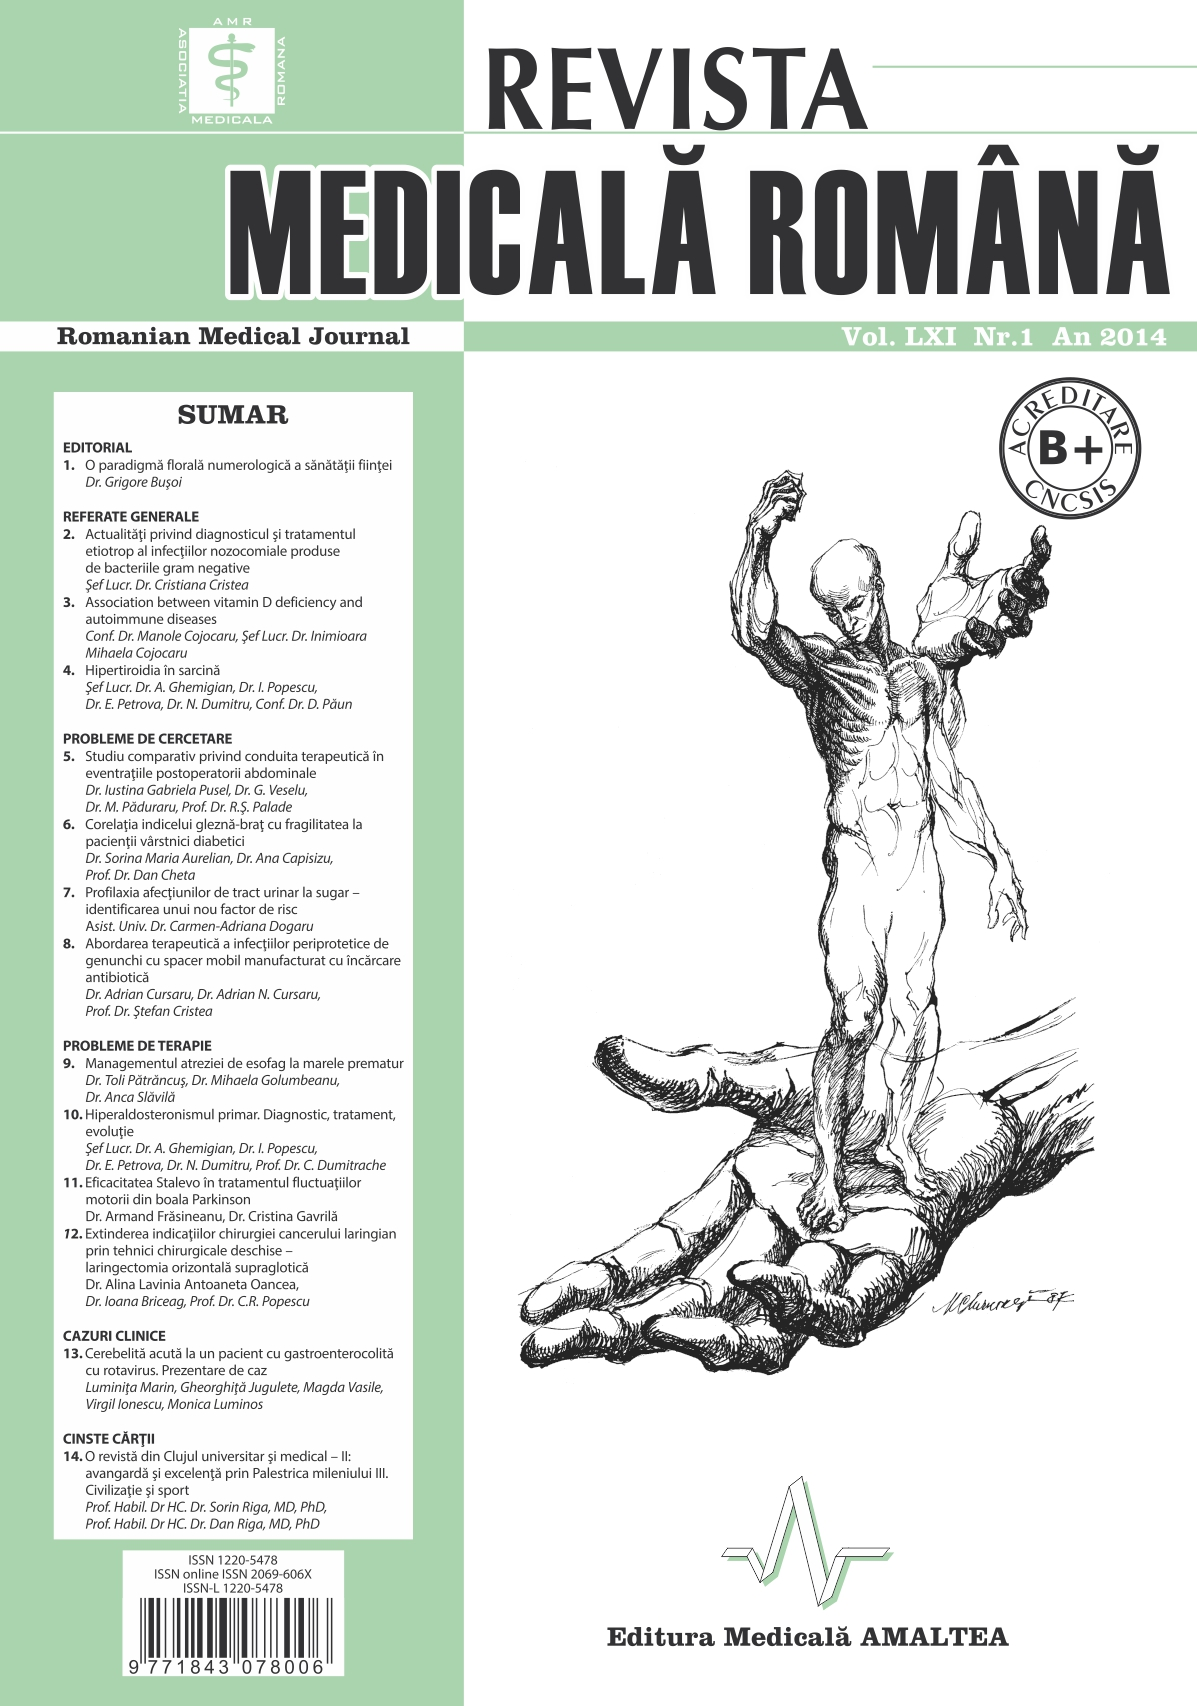 REVISTA MEDICALA ROMANA - Romanian Medical Journal, Vol. LXI, No. 1, Year 2014